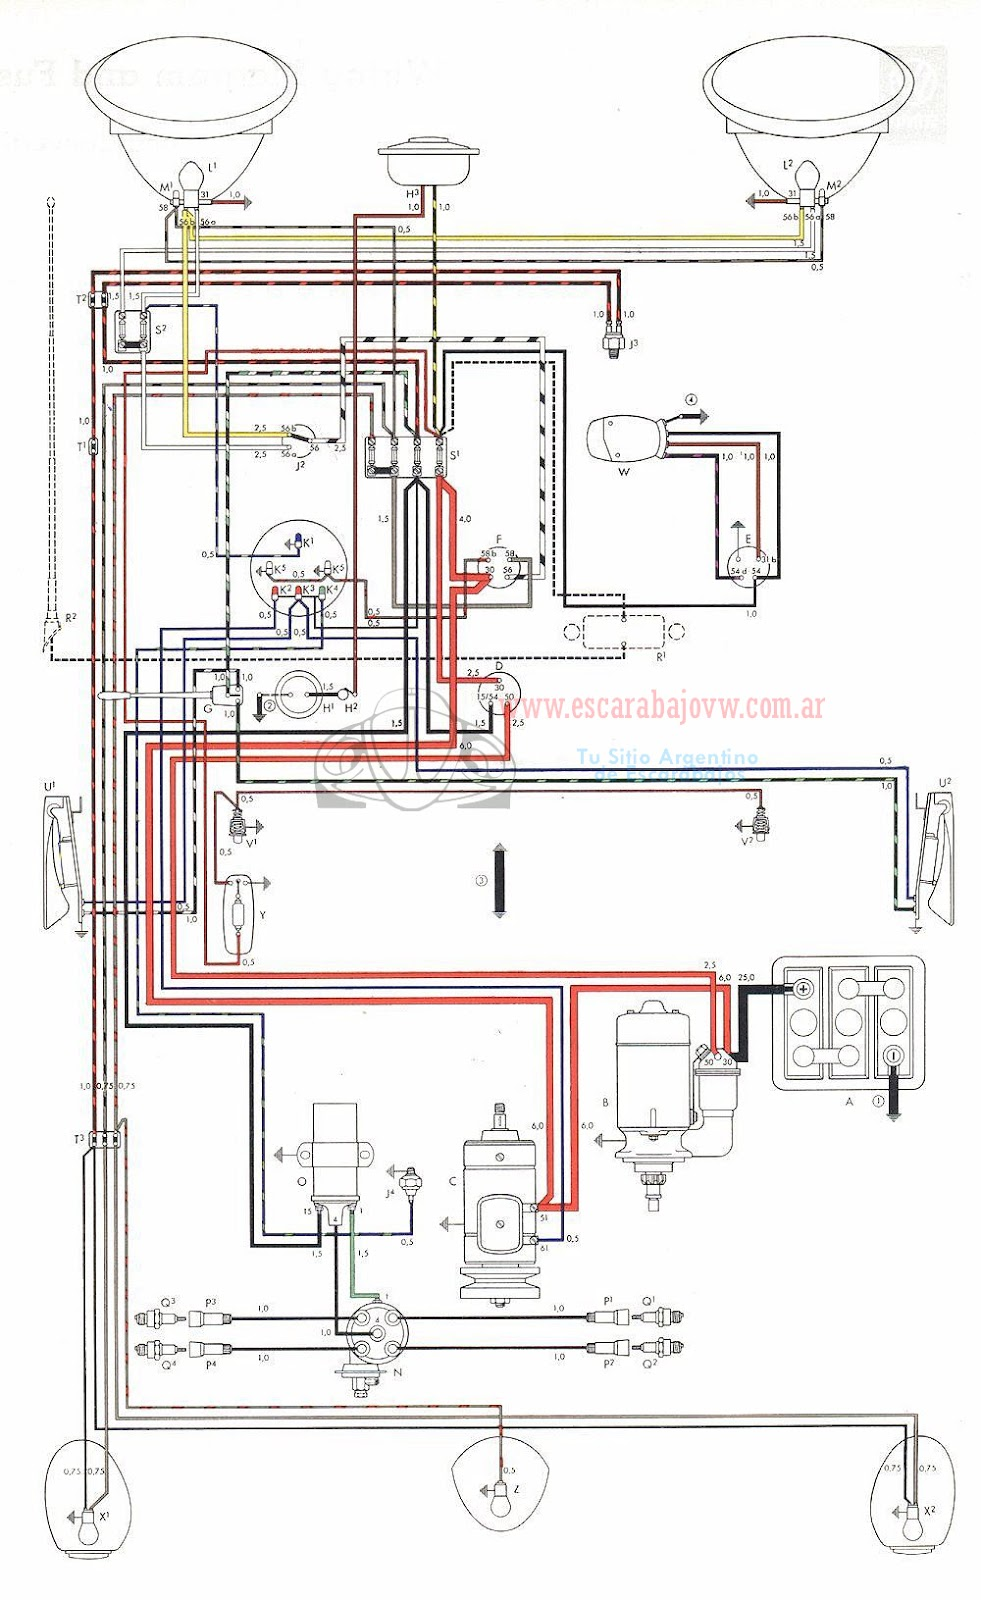 medium resolution of 2012 chevrolet sonic wiring diagram 2014 chevrolet 1998 chevy malibu engine diagram 2013 chevy malibu engine